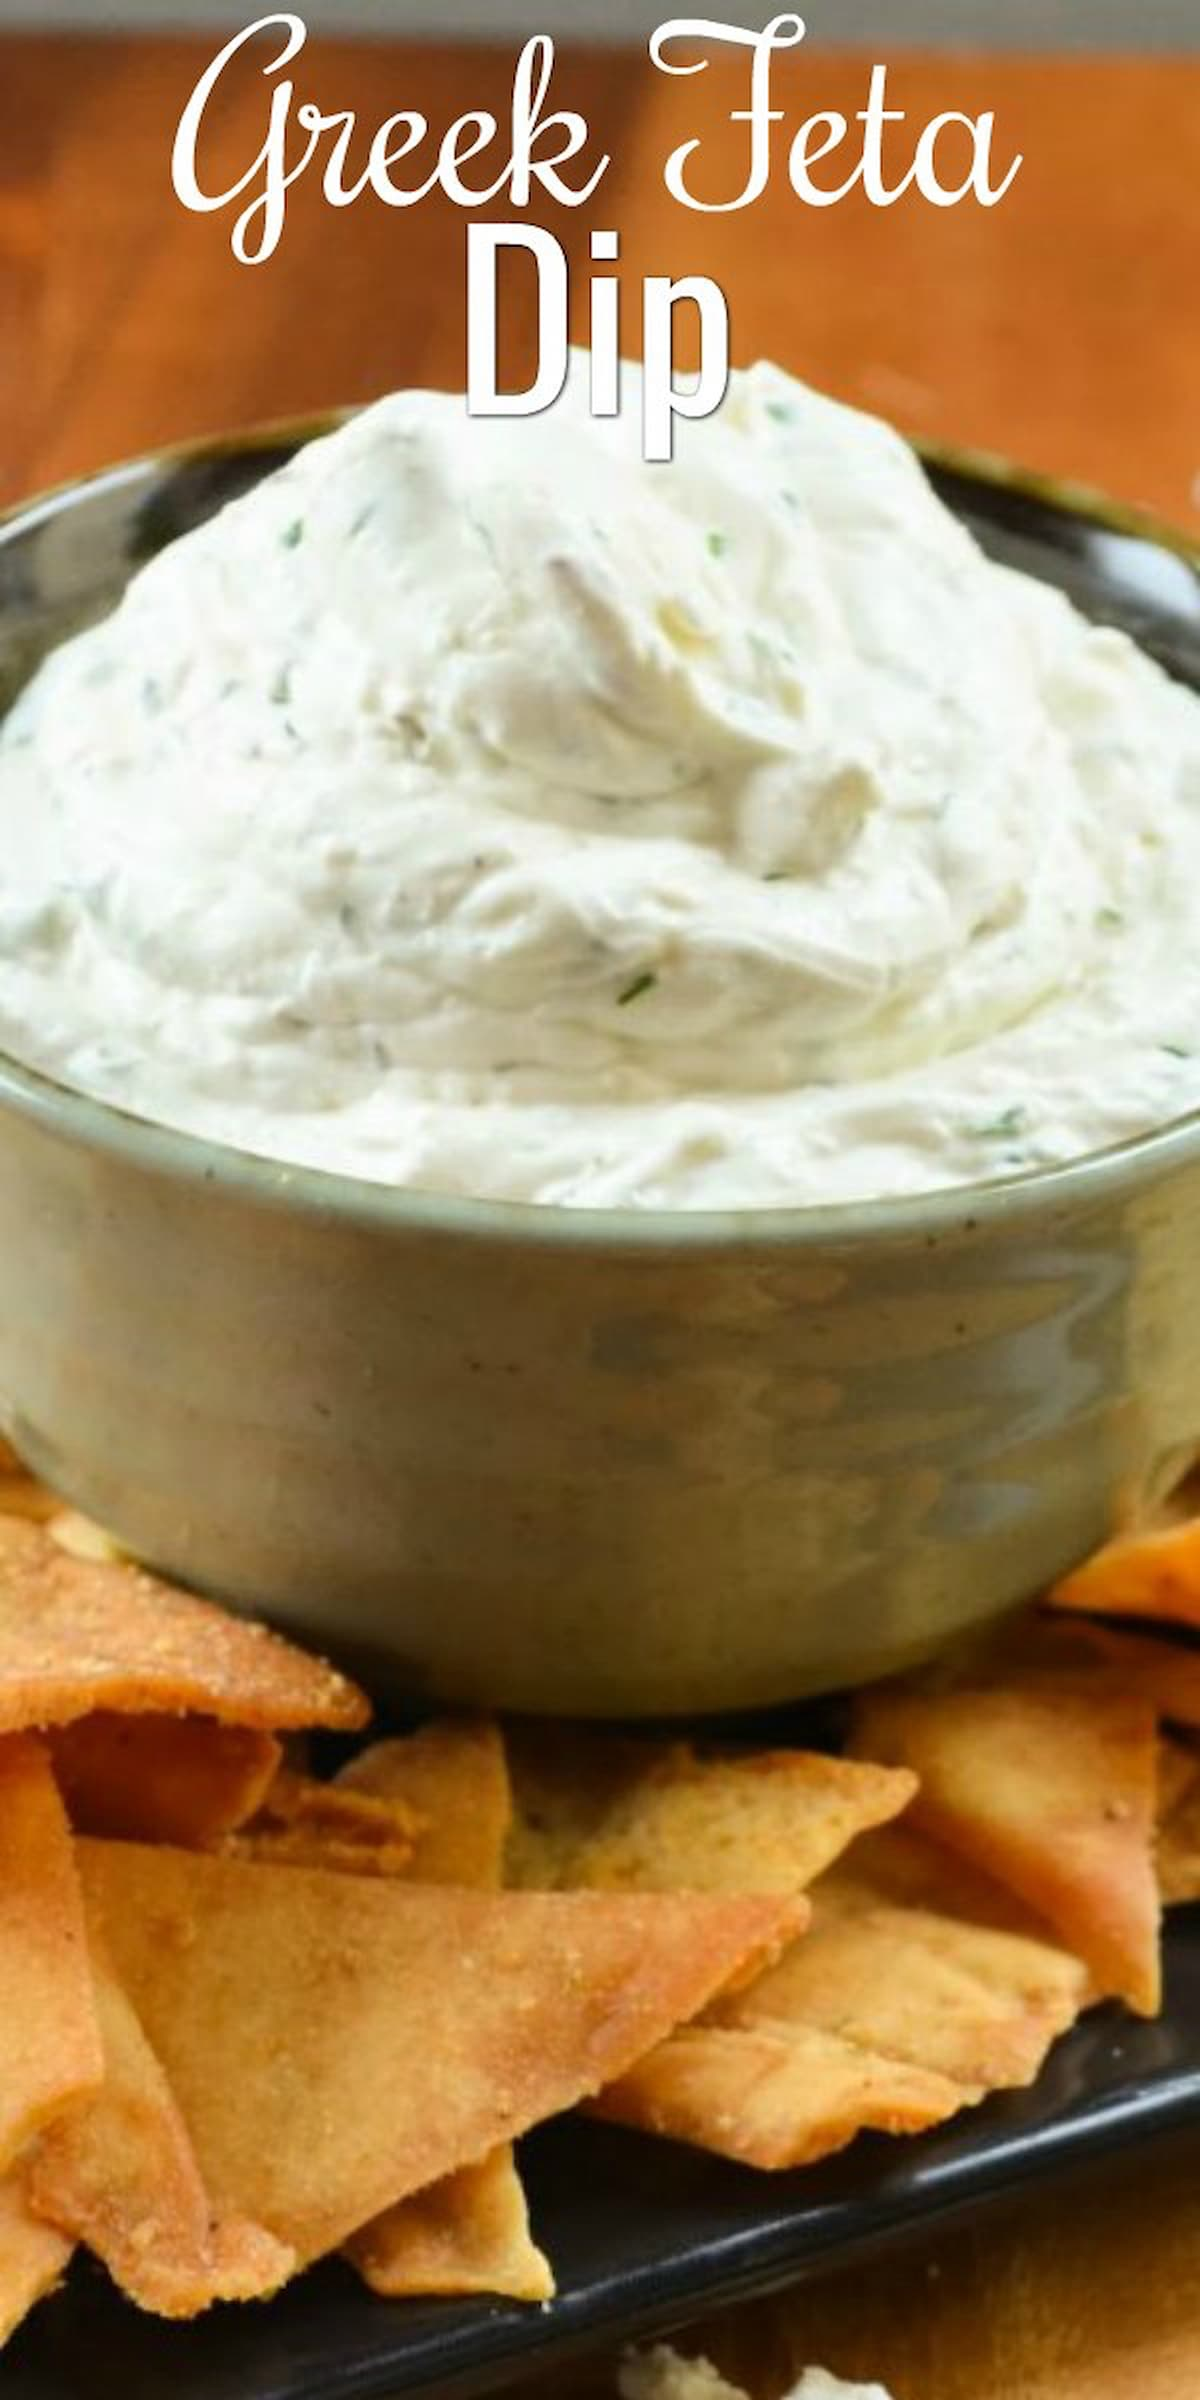 Greek Feta Dip in a bowl with pita chips around the edge.